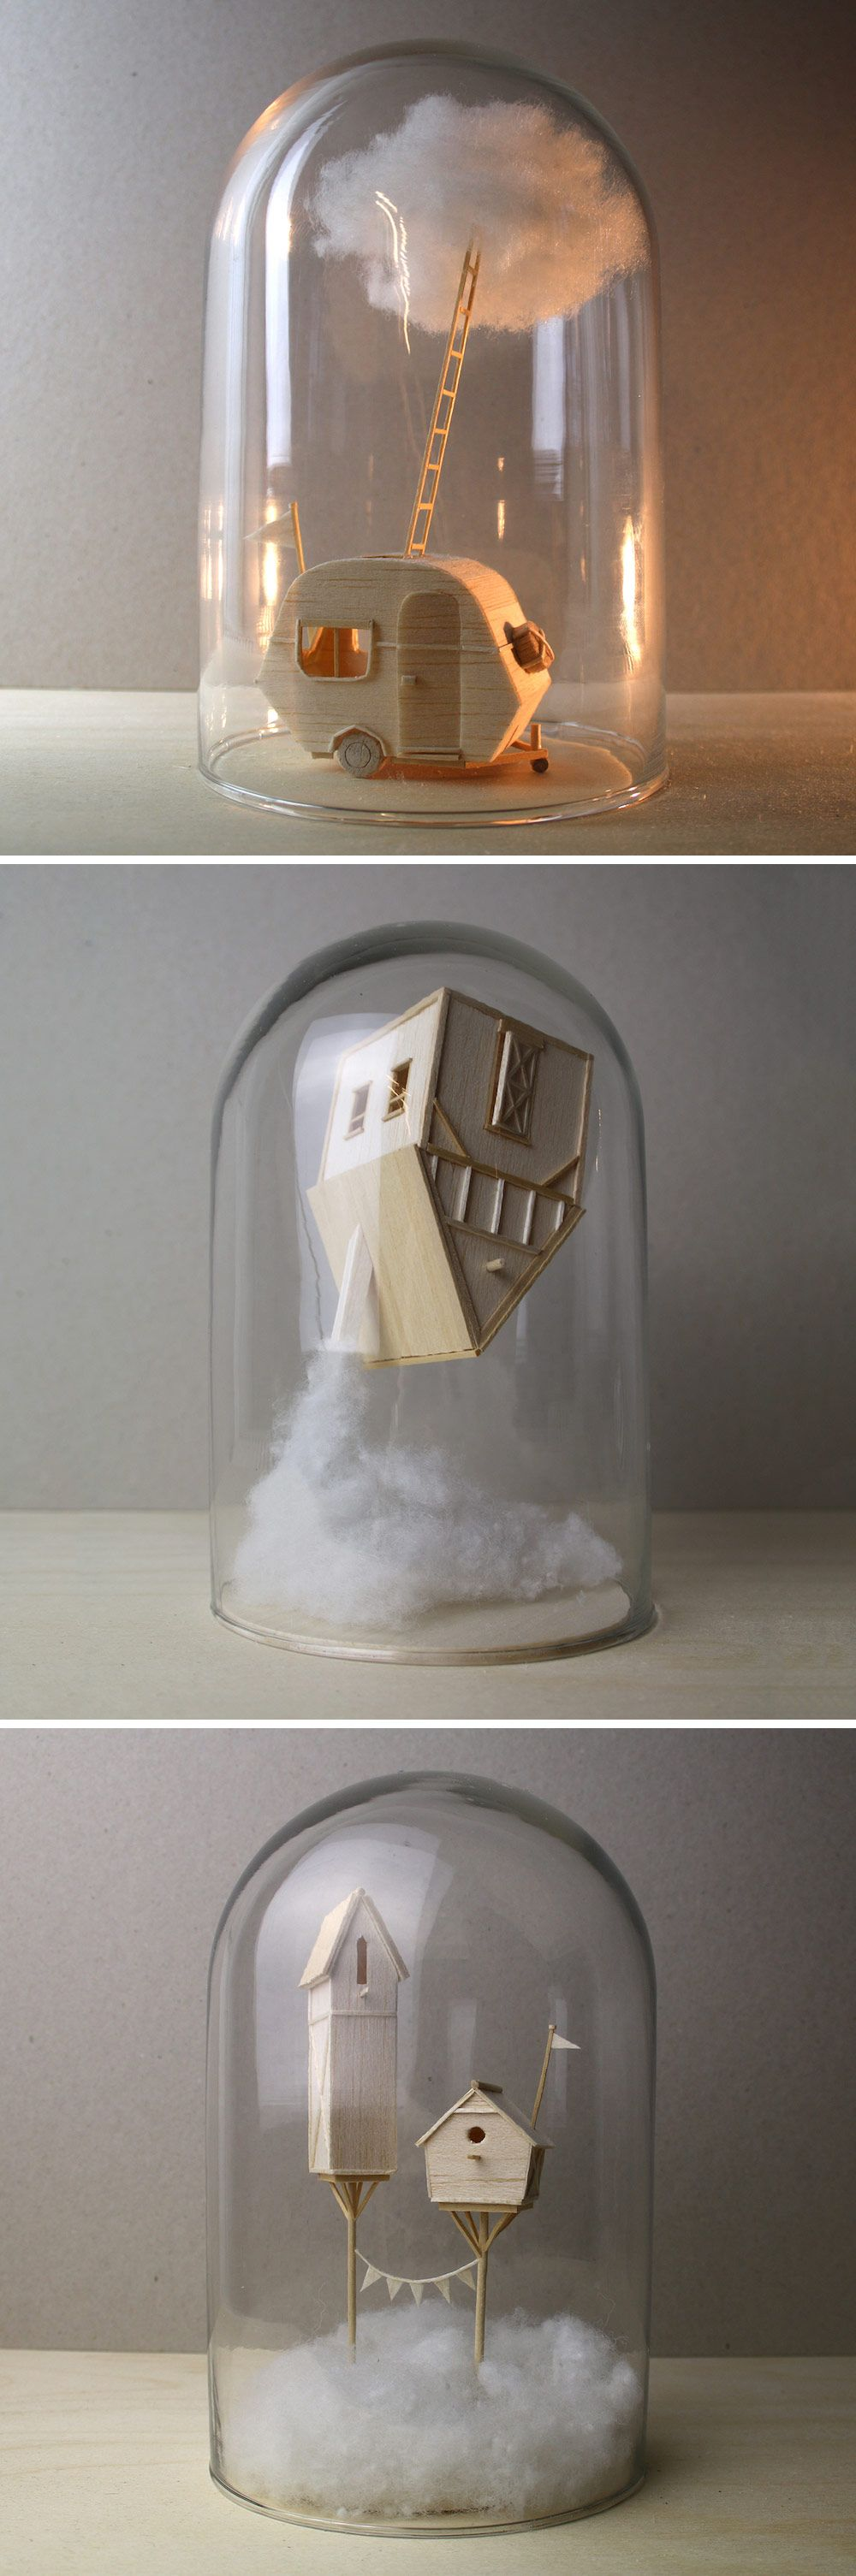 Miniature narrativebased sculptures created from balsa wood by vera